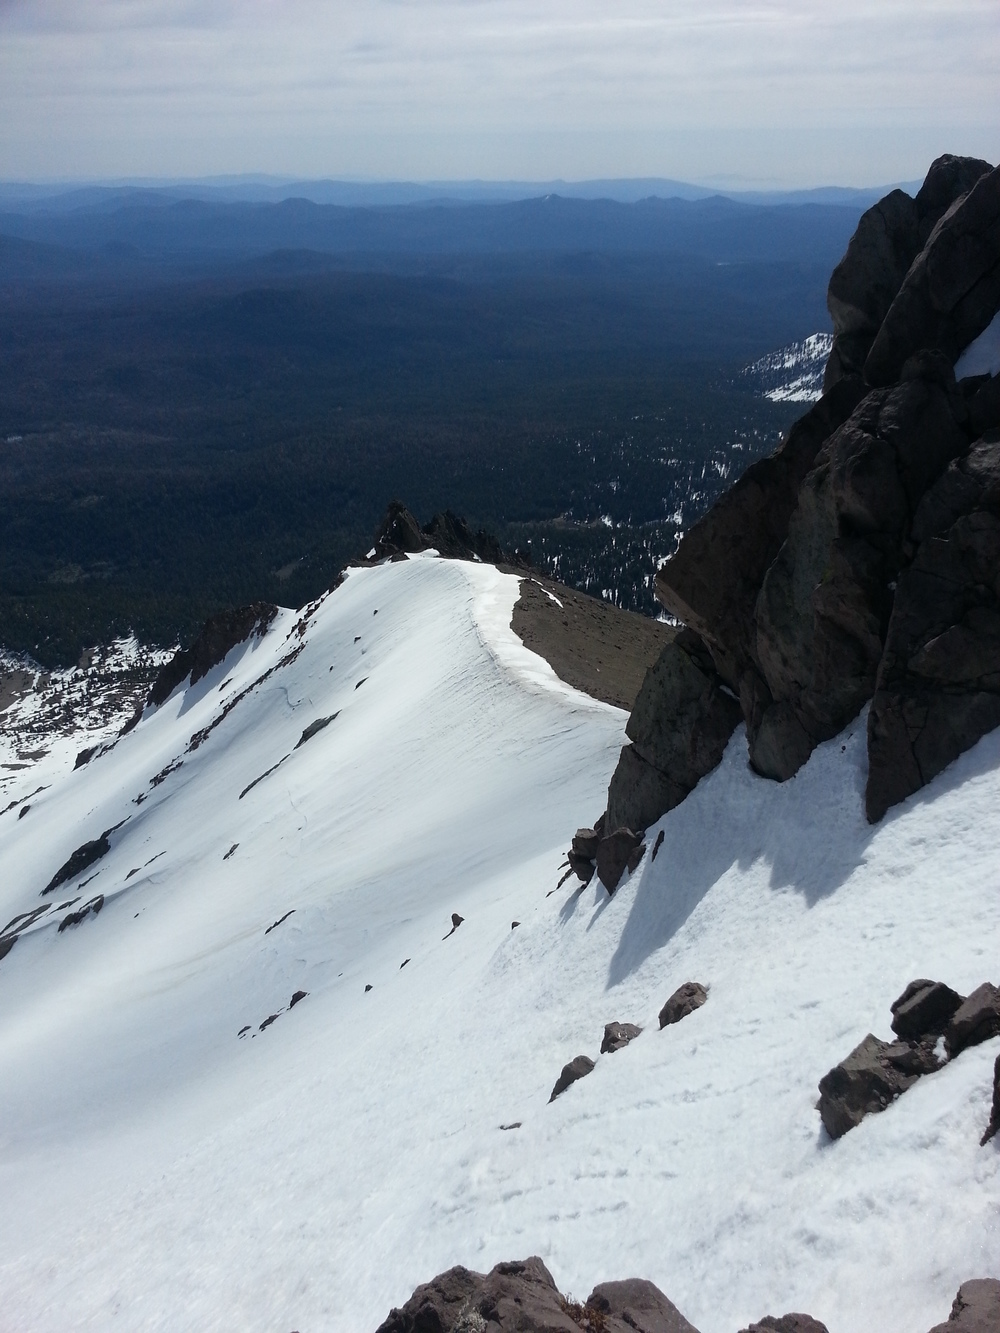 On Mount Lassen